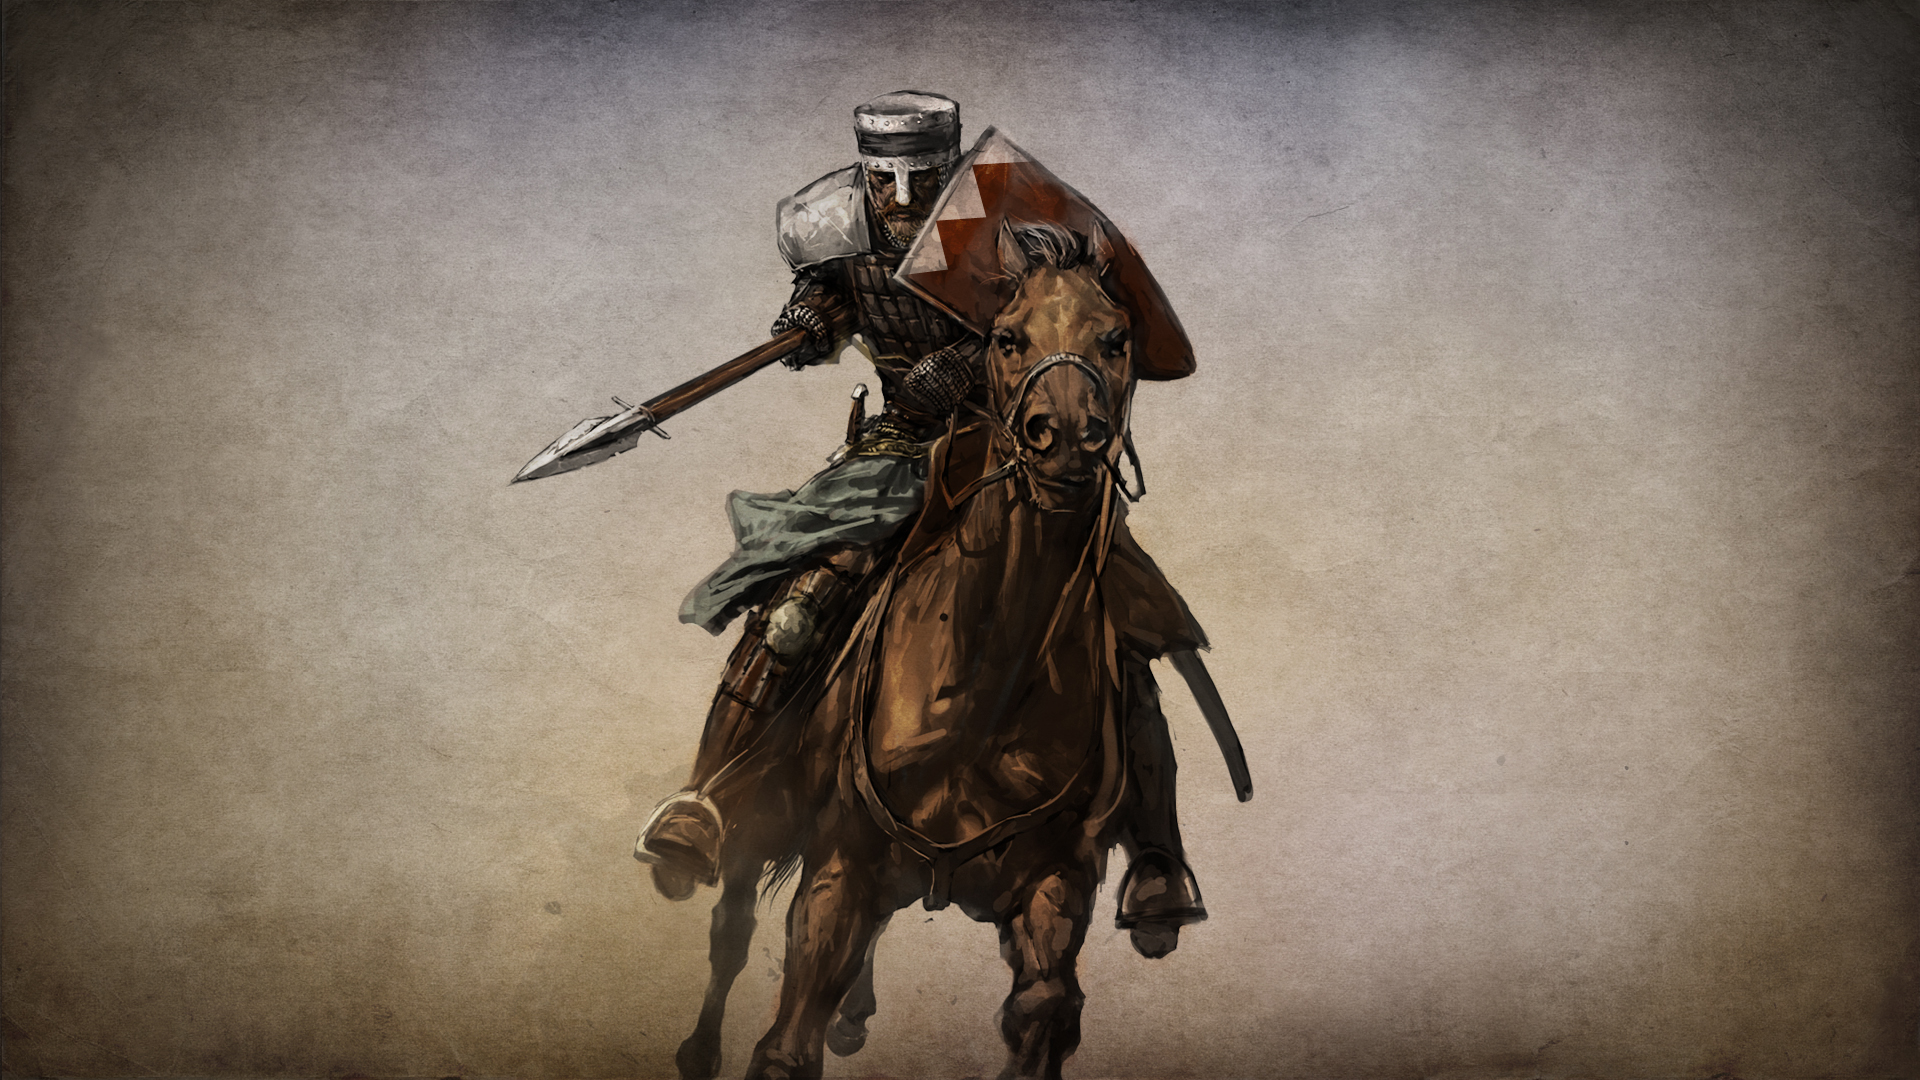 MOUNT AND BLADE fantasy warrior armor weapon sword horse g wallpaper 1920x1080